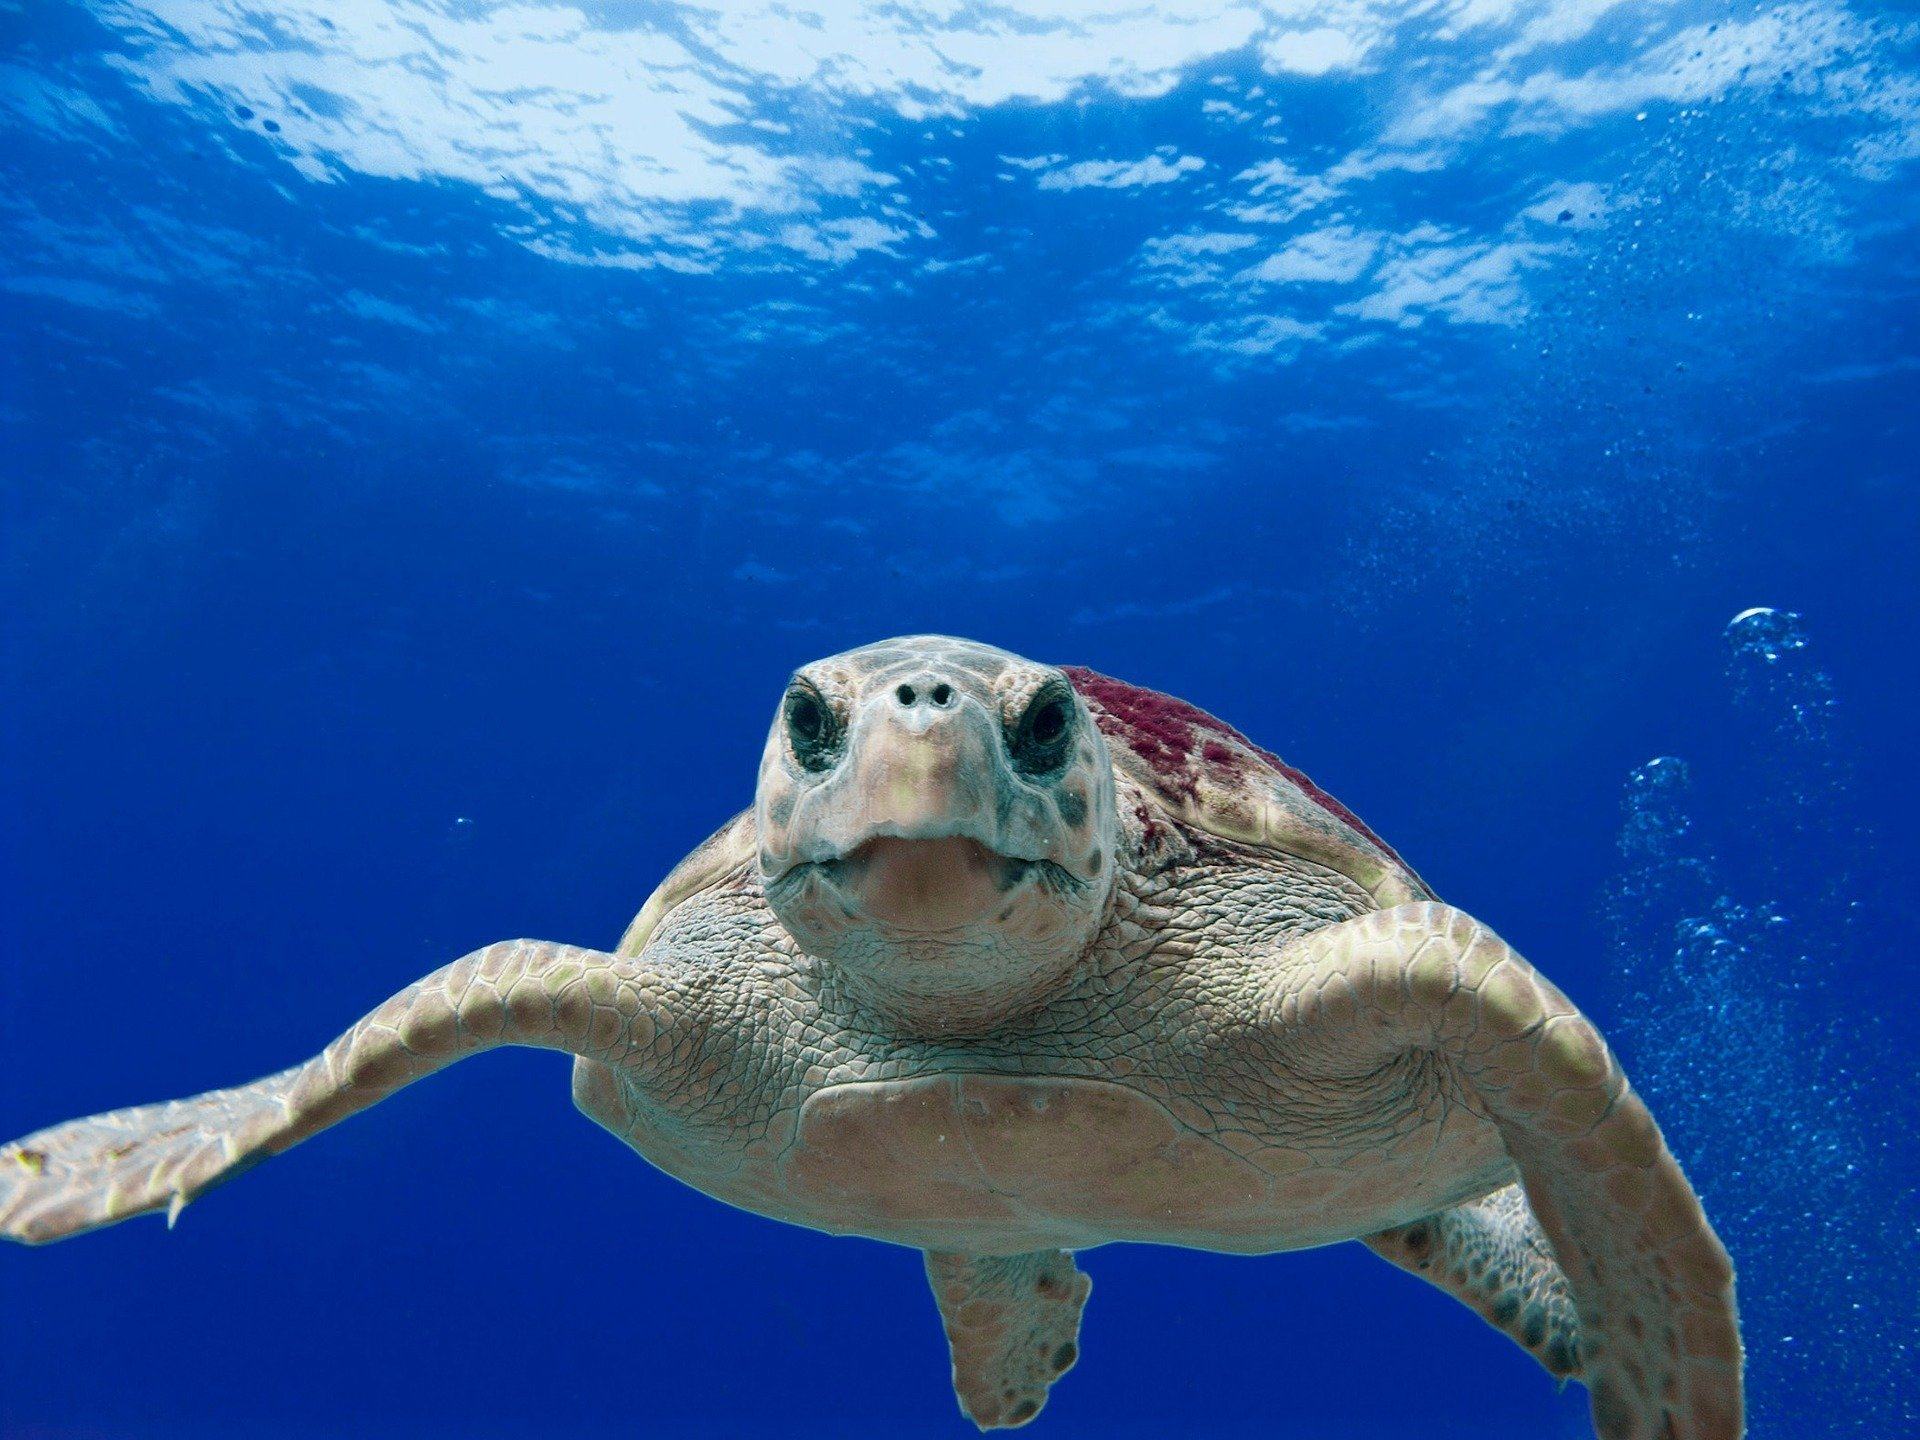 Crushed it: Sea turtles can help us understand hurricanes in the mid-Atlantic